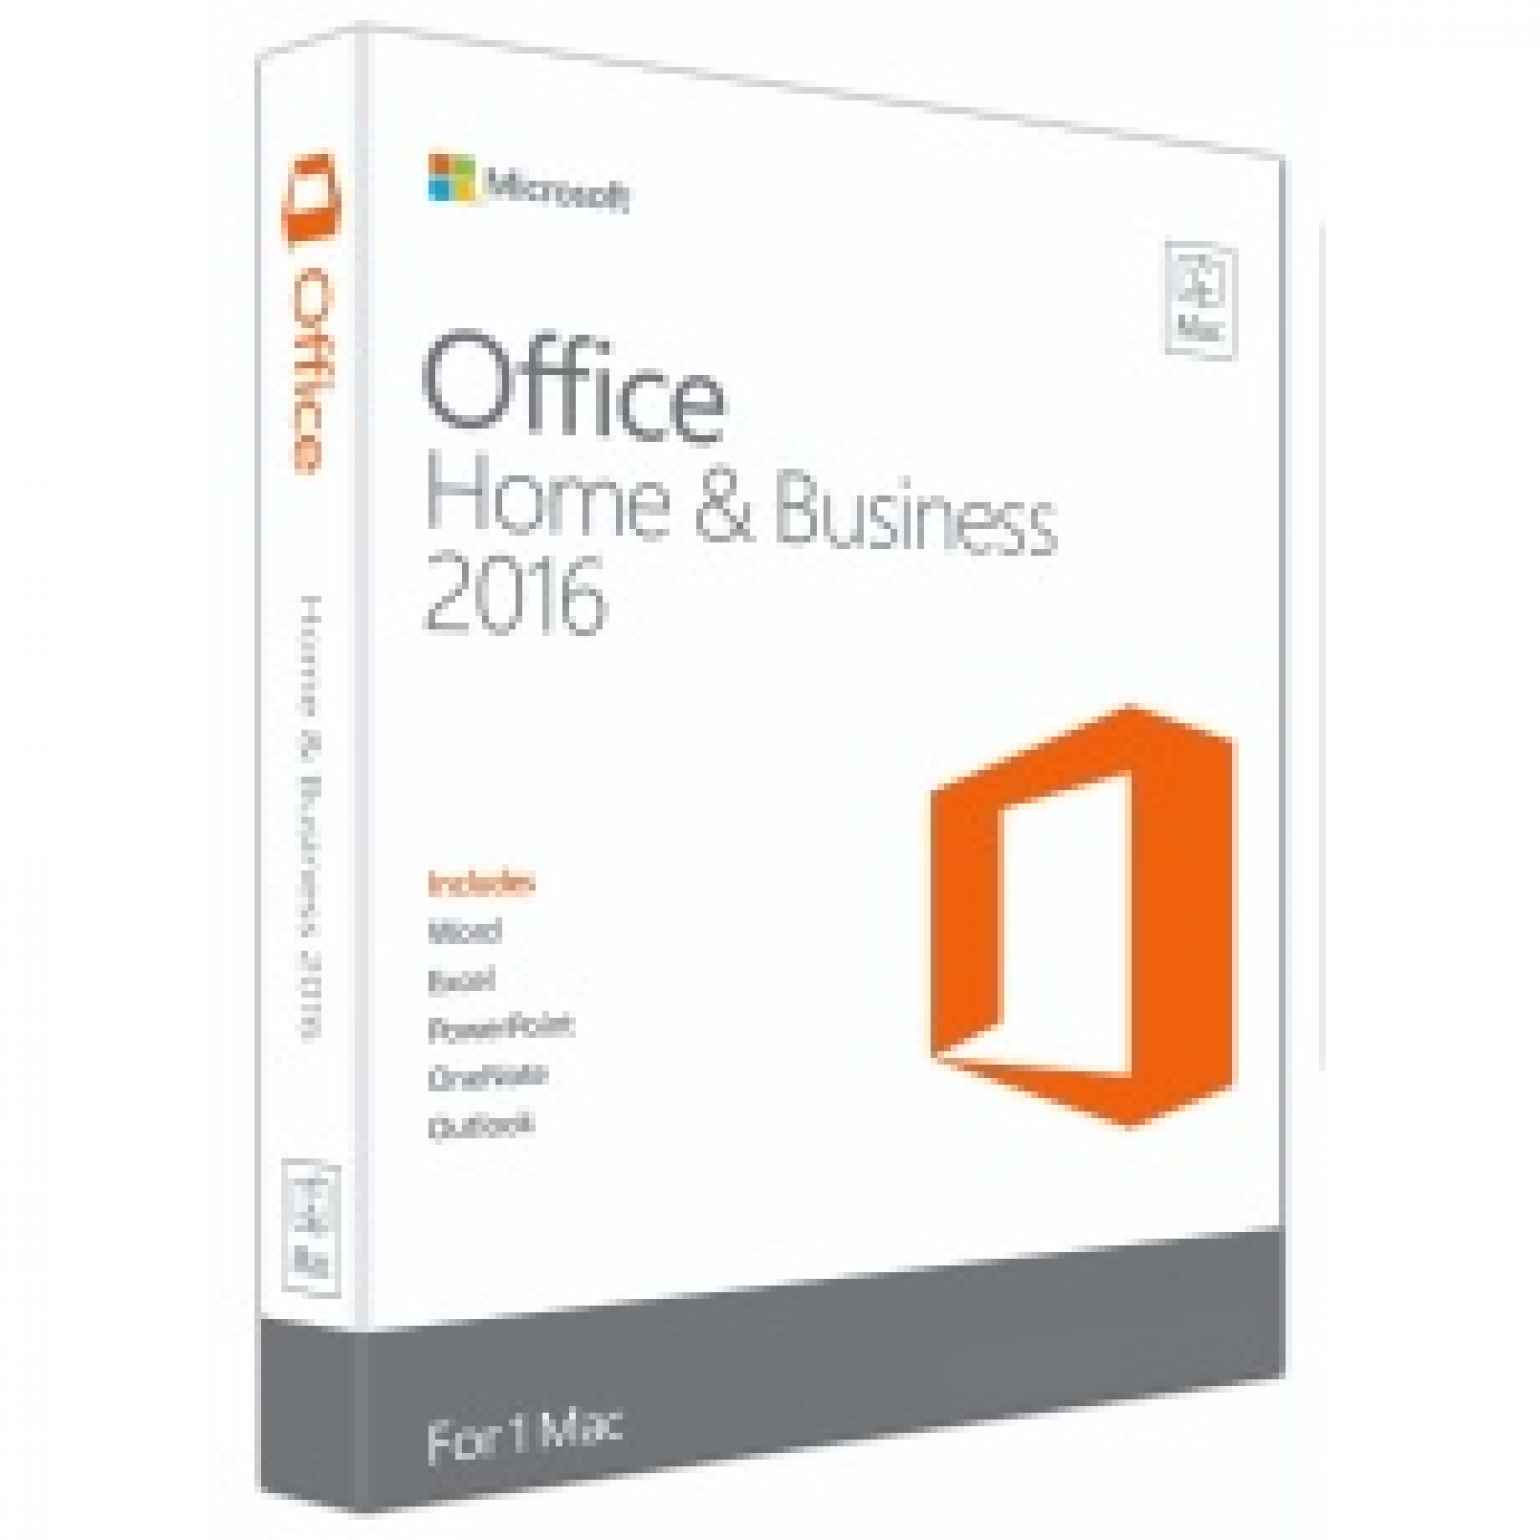 Microsoft Office Home and Business 2016  (32Bit/64Bit)  1 PC / User